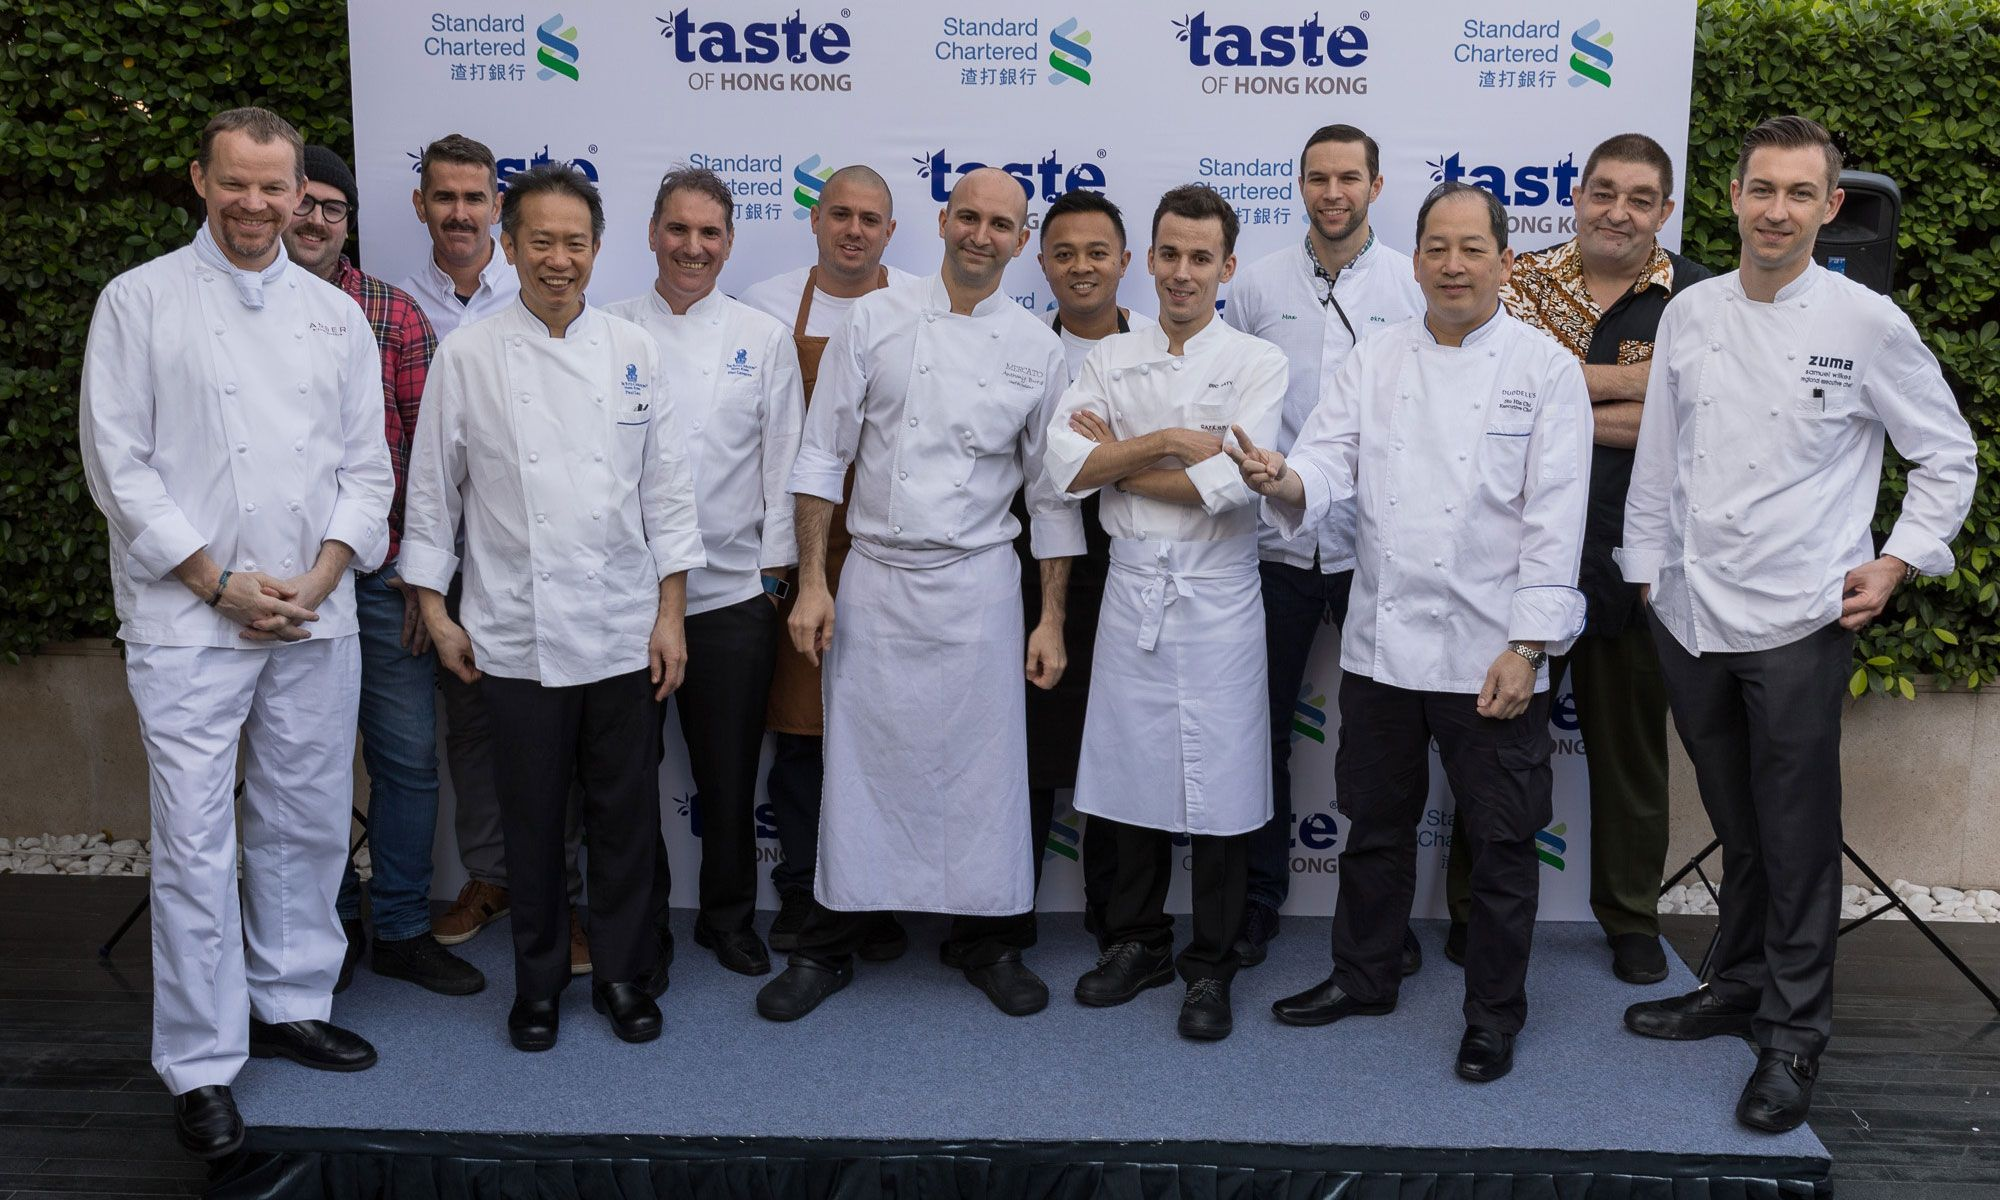 Taste of Hong Kong Returns to Central Harbourfront Next March